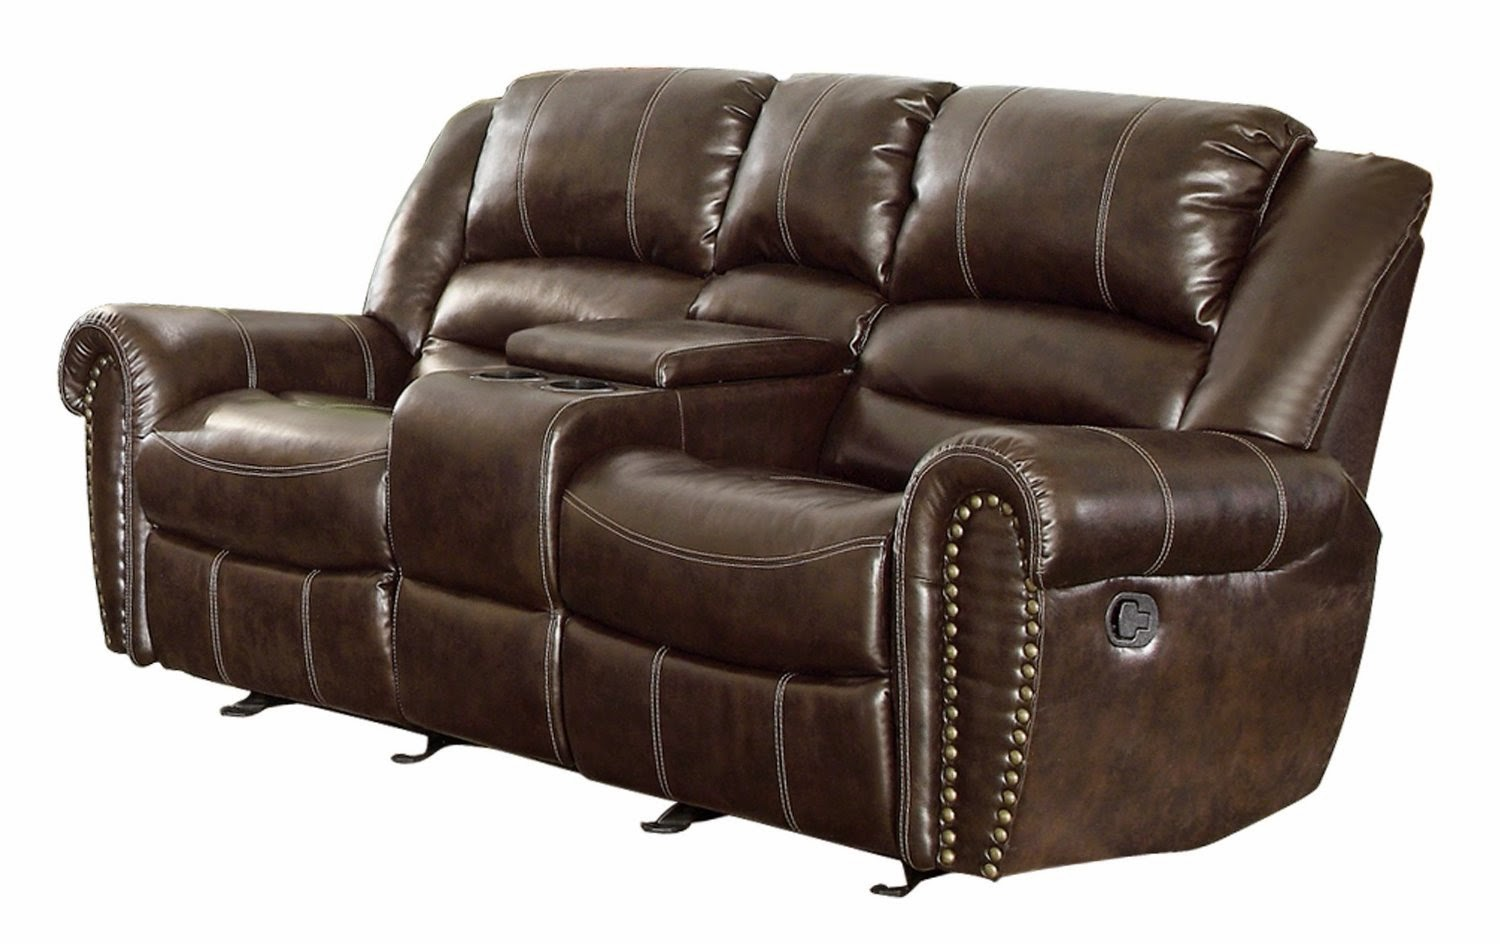 Reclining Sofa Loveseat And Chair Sets Two Seat Reclining Leather Sofa